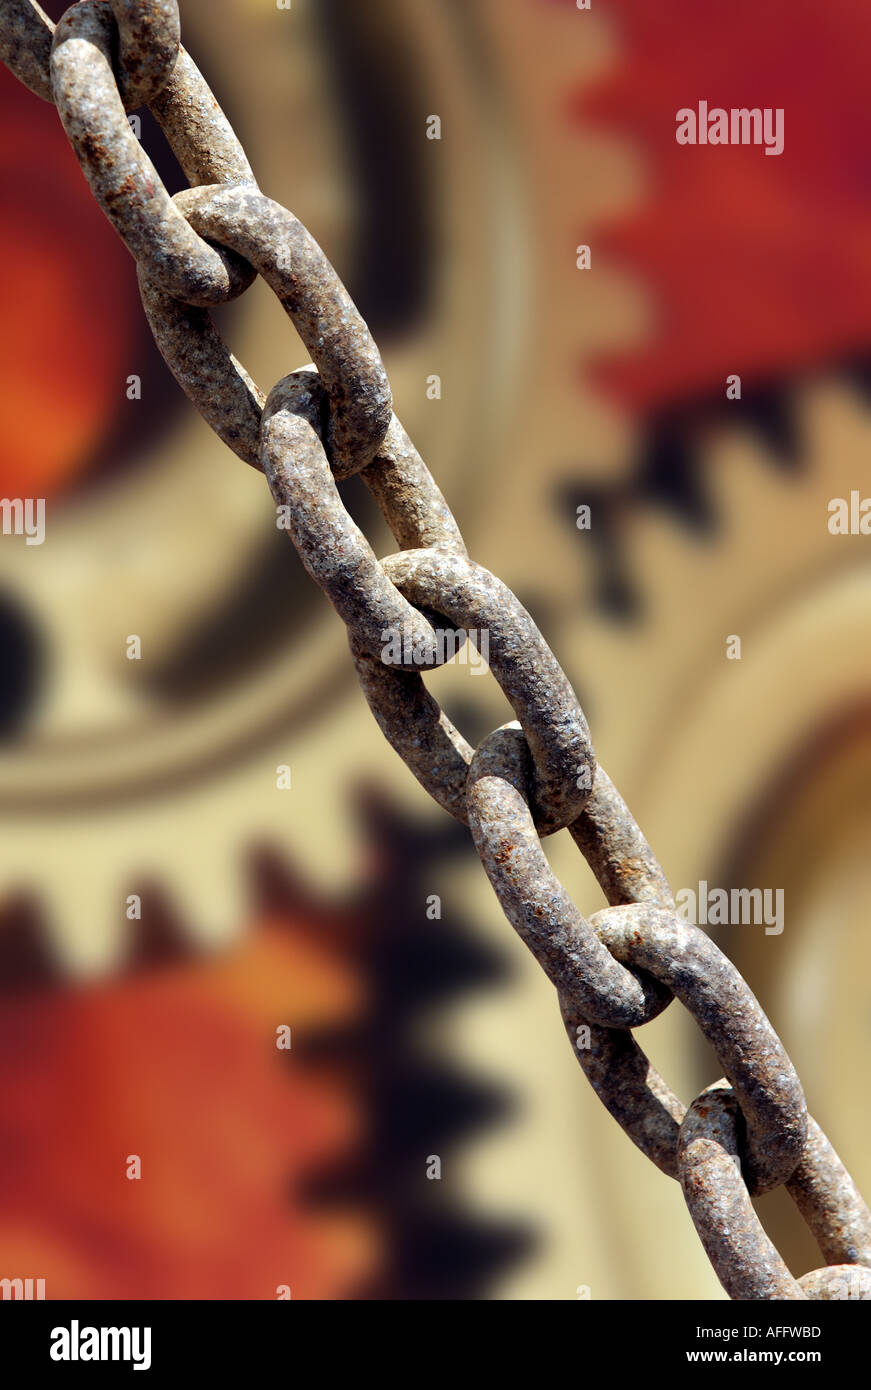 industrial chain and cog wheels - Stock Image